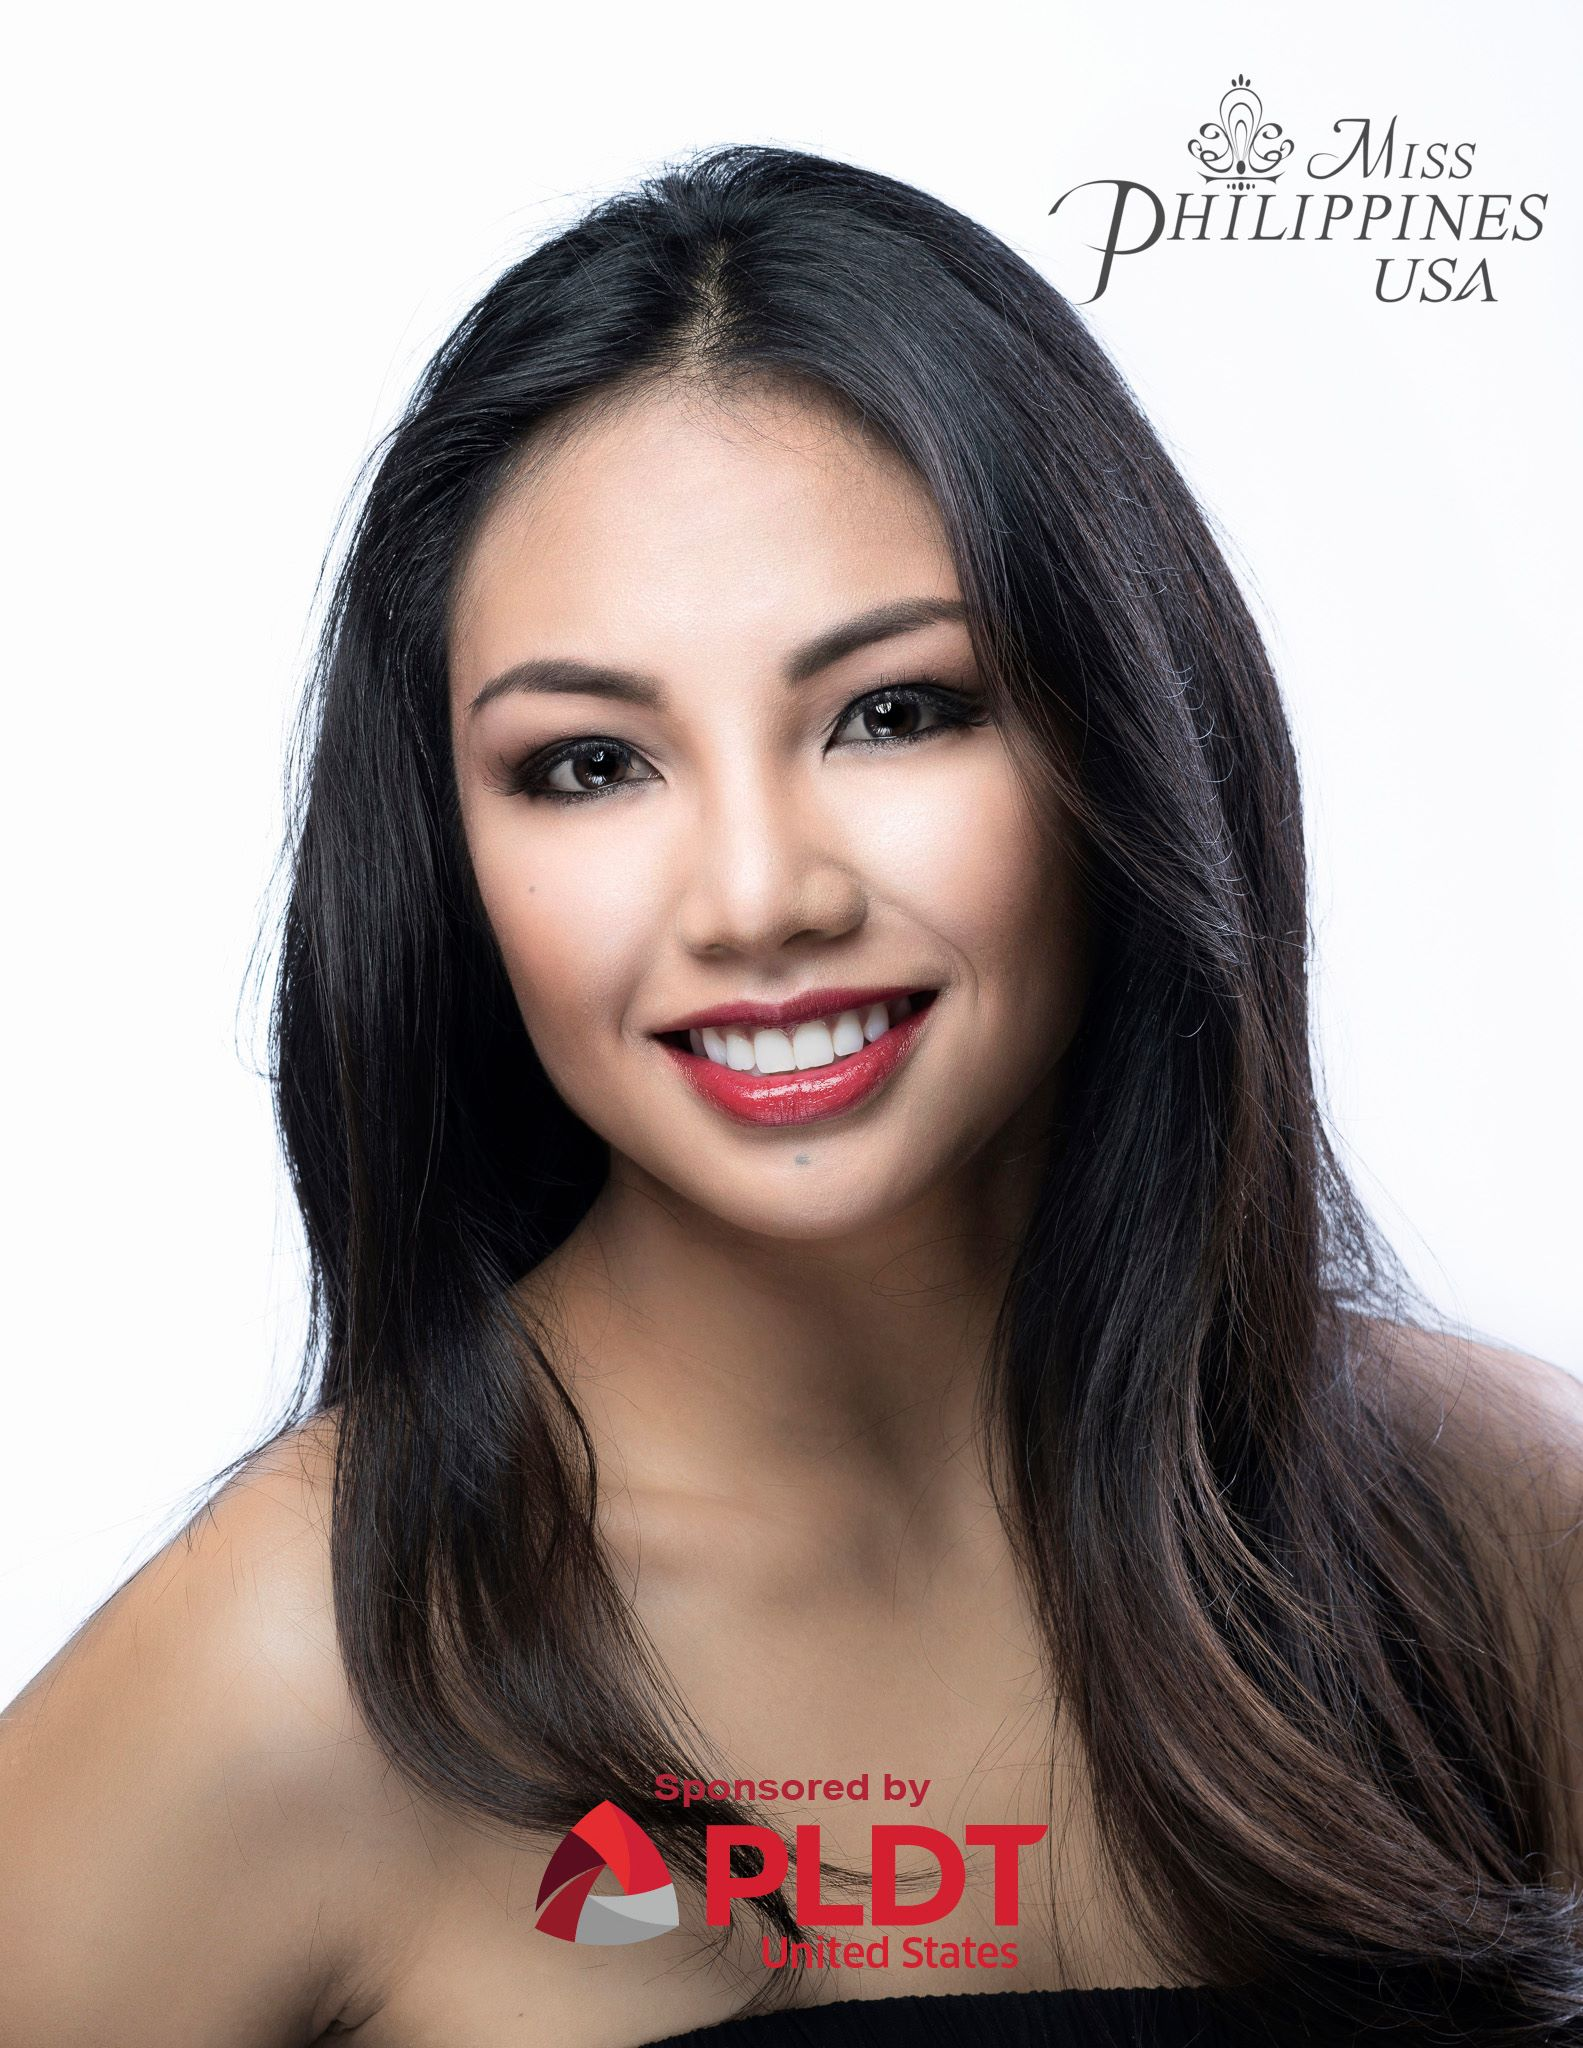 Kalea Pitel , The New Miss Philippines USA